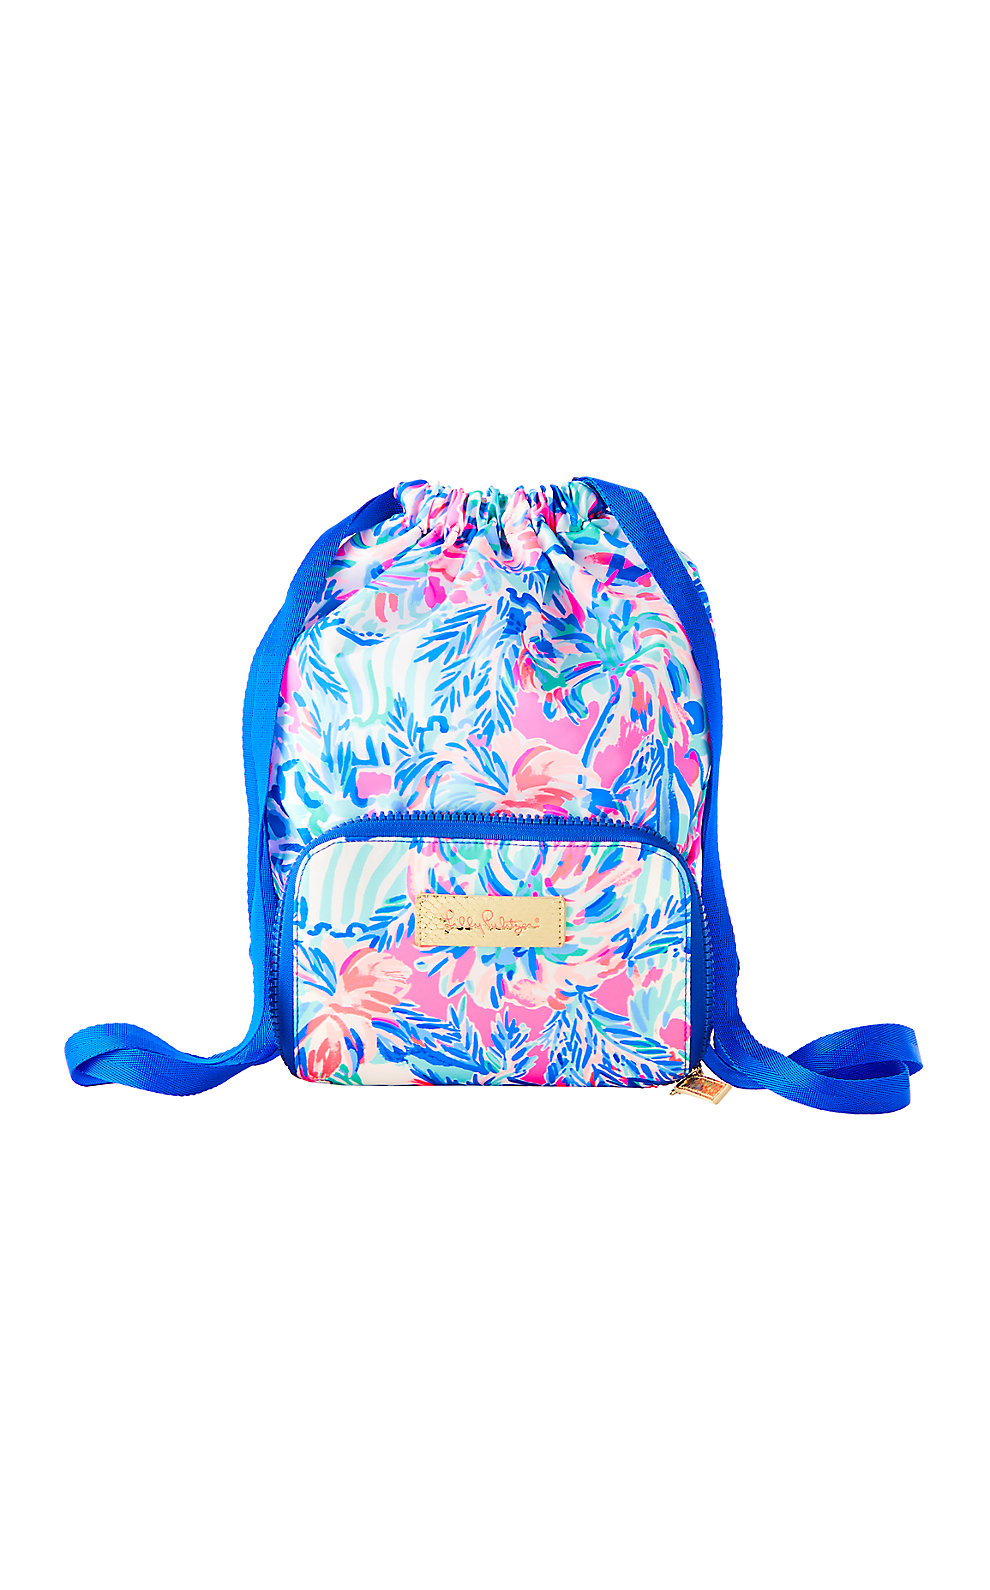 Lilly Pulitzer Packable Beach Pack Bag